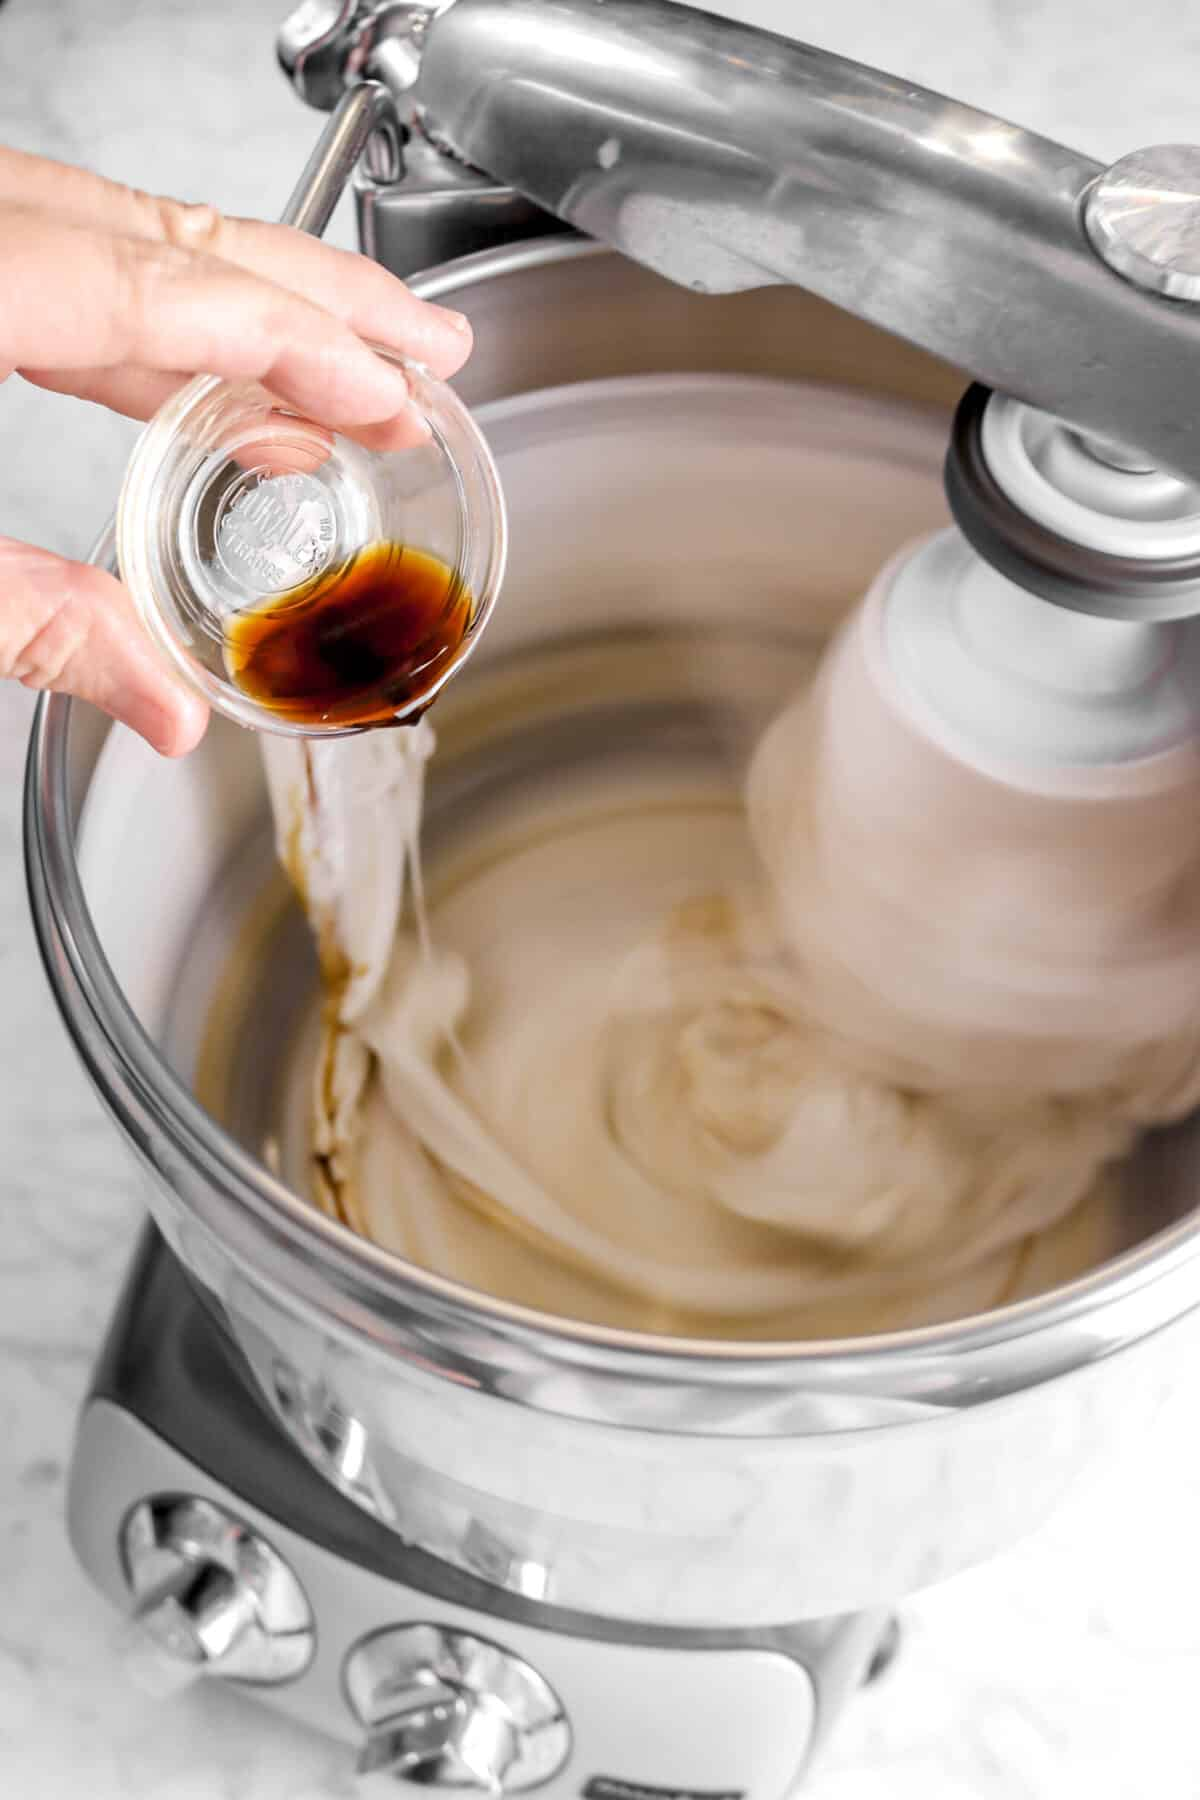 vanilla being poured into egg white mixture